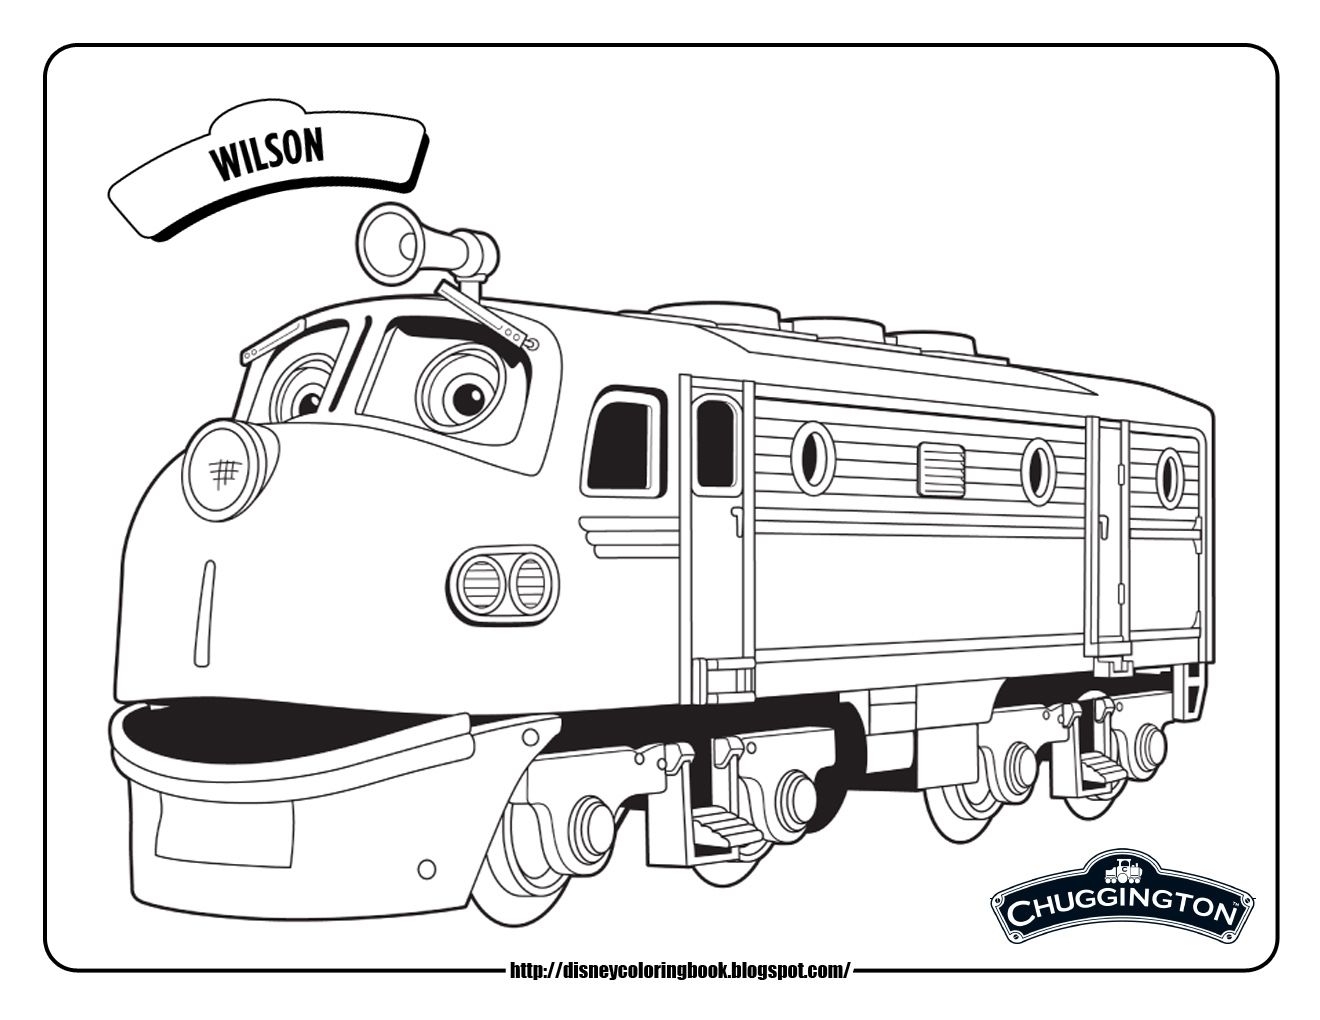 Chuggington Coloring Pages Chuggington Wilson Train